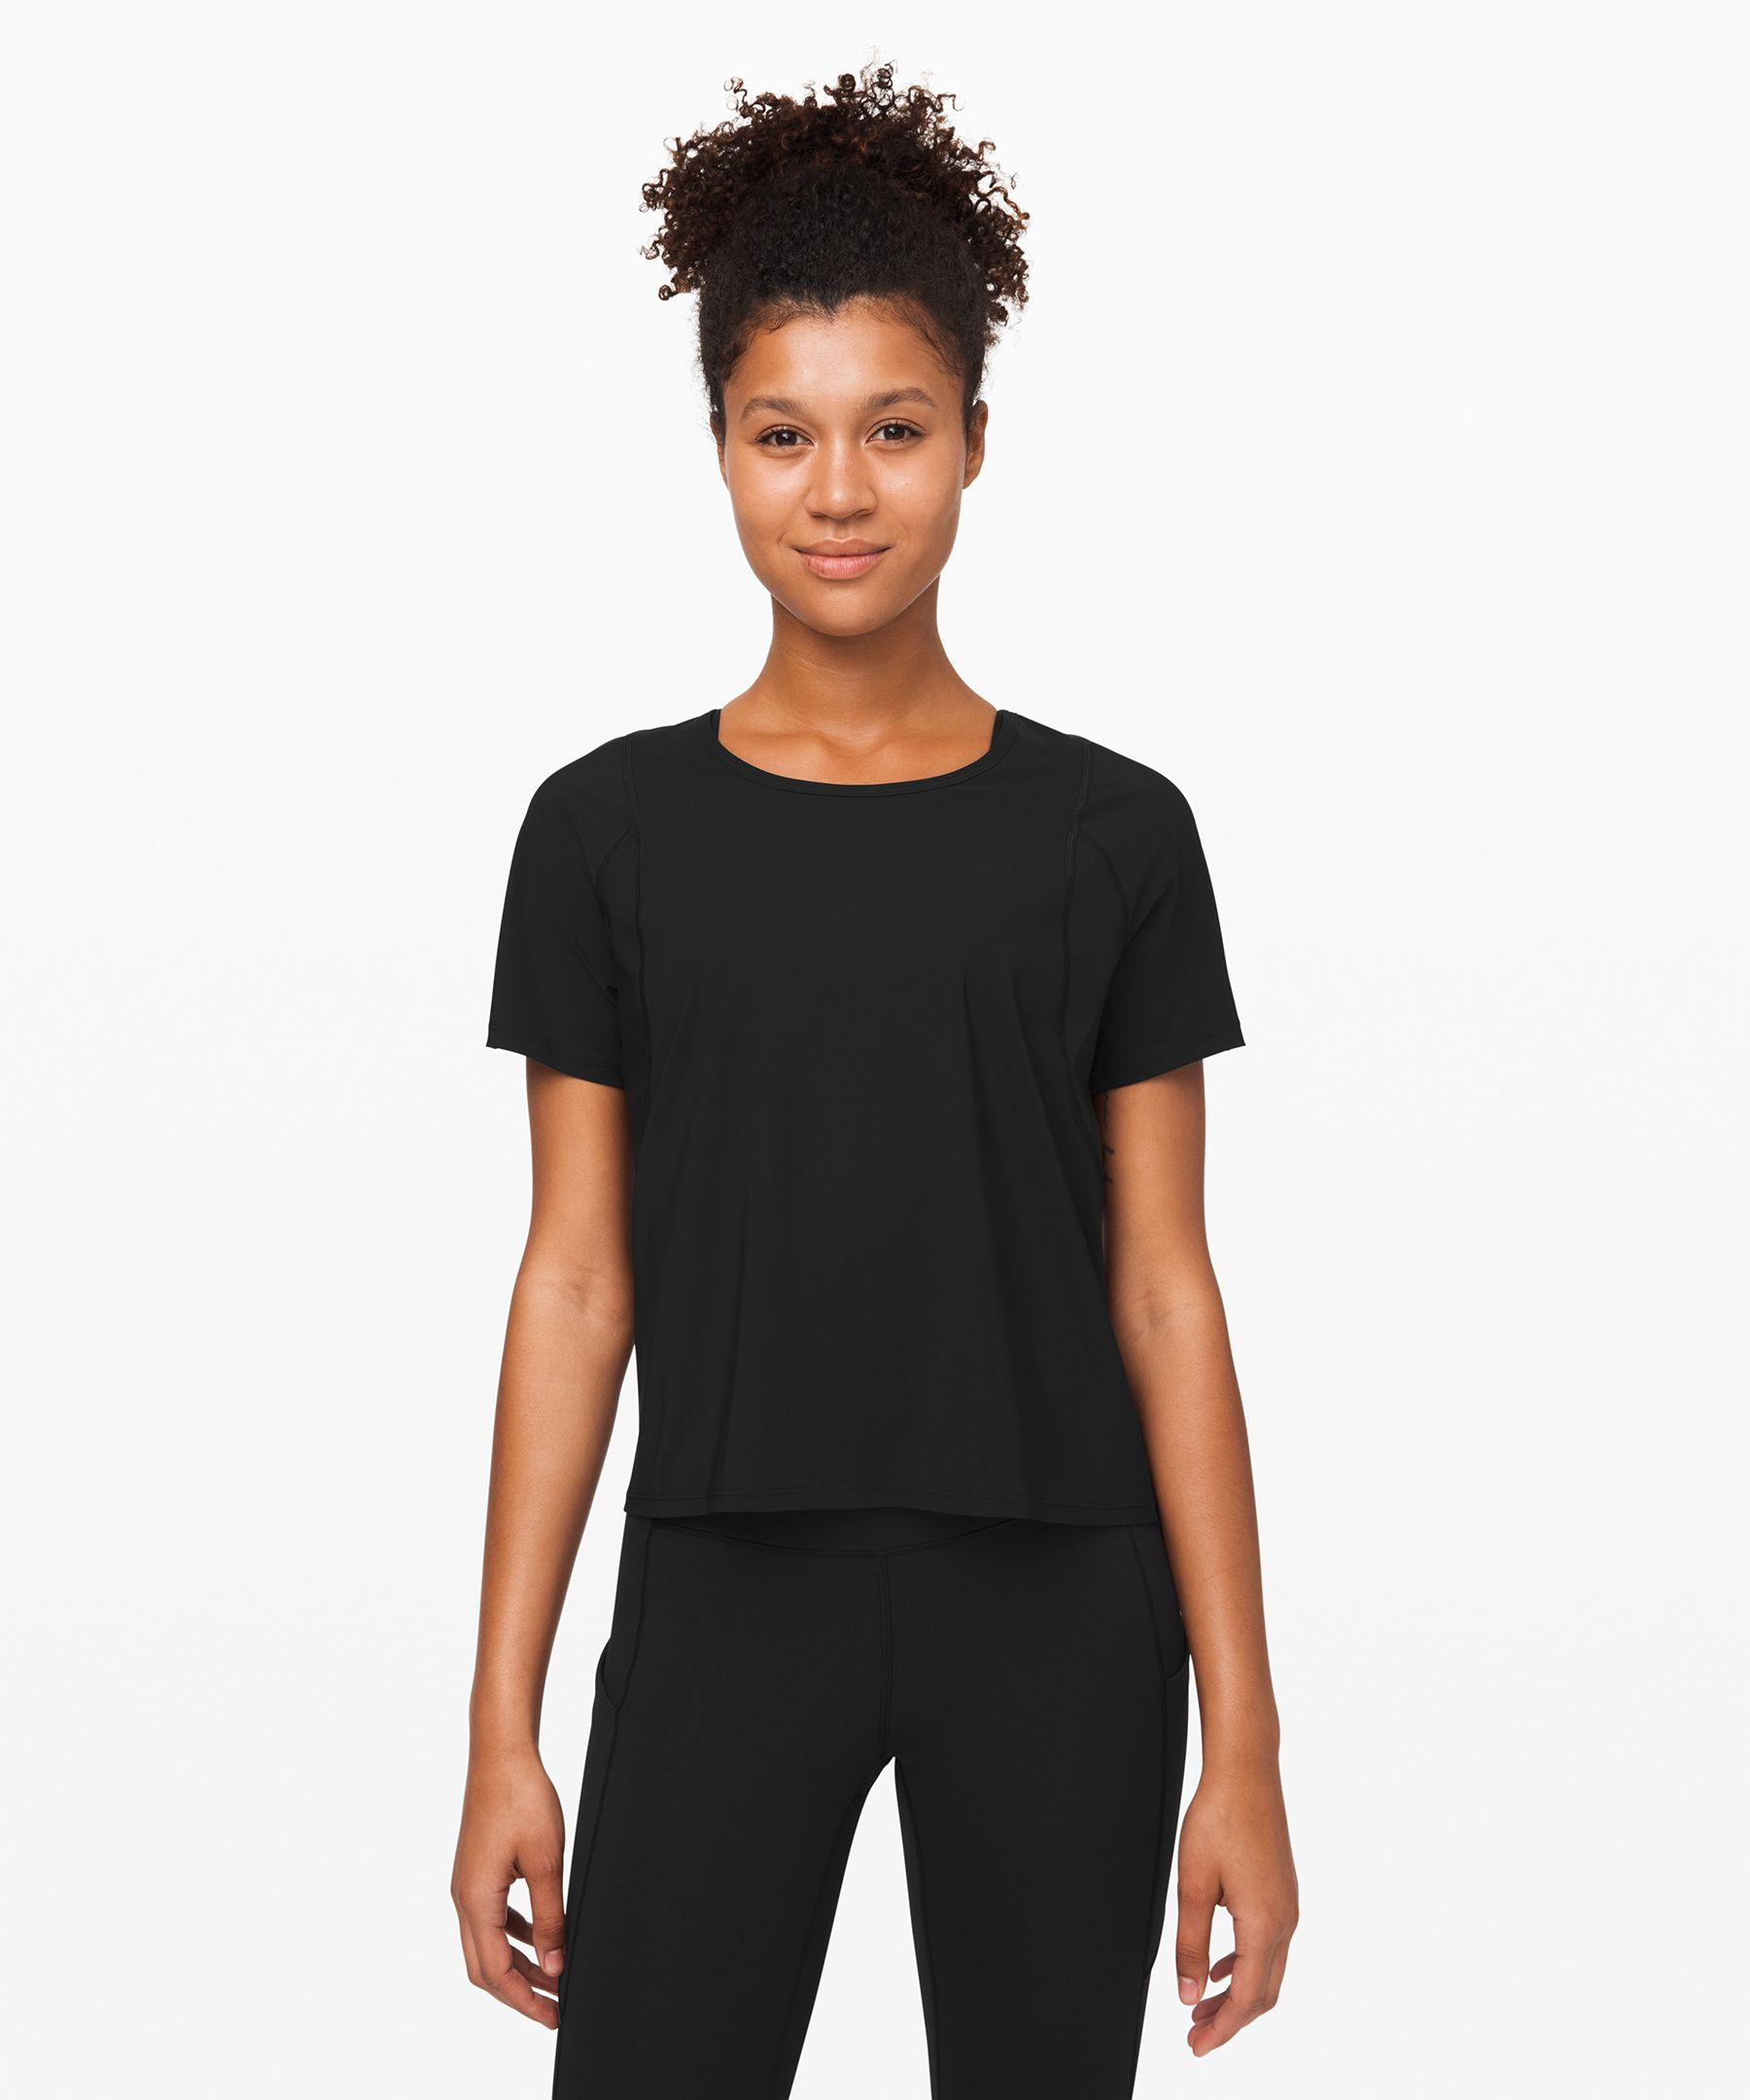 Hello sunny days. This run-ready tee protects your skin when the rays are strong and you\\\'re chasing goals.